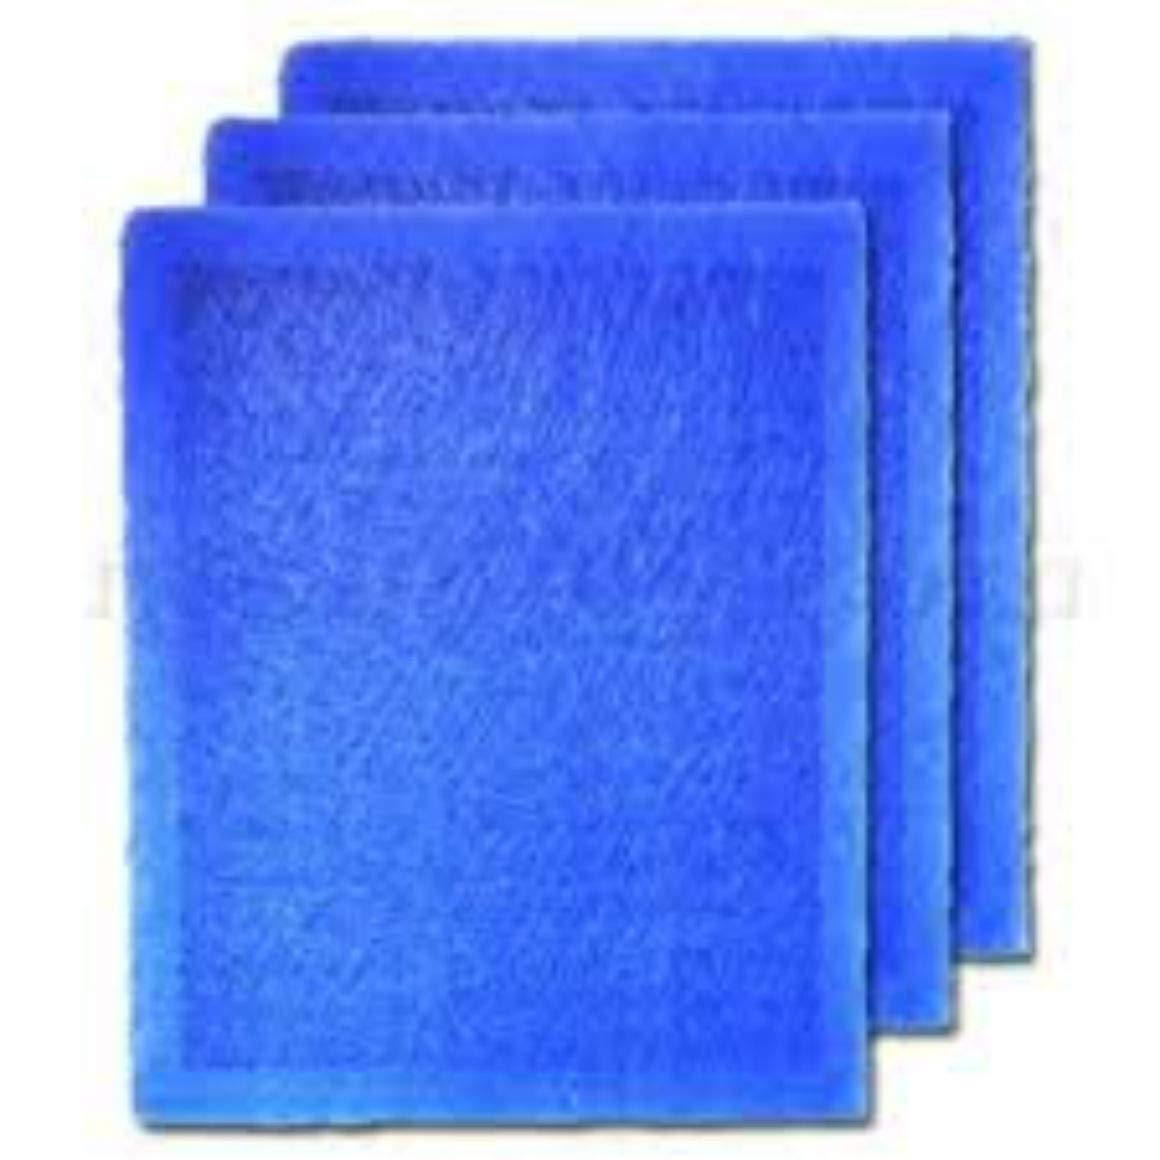 Dynamic Air Cleaner Replacement Filter Pads 19 3/8x19 3/8 Refills (3 Pack)